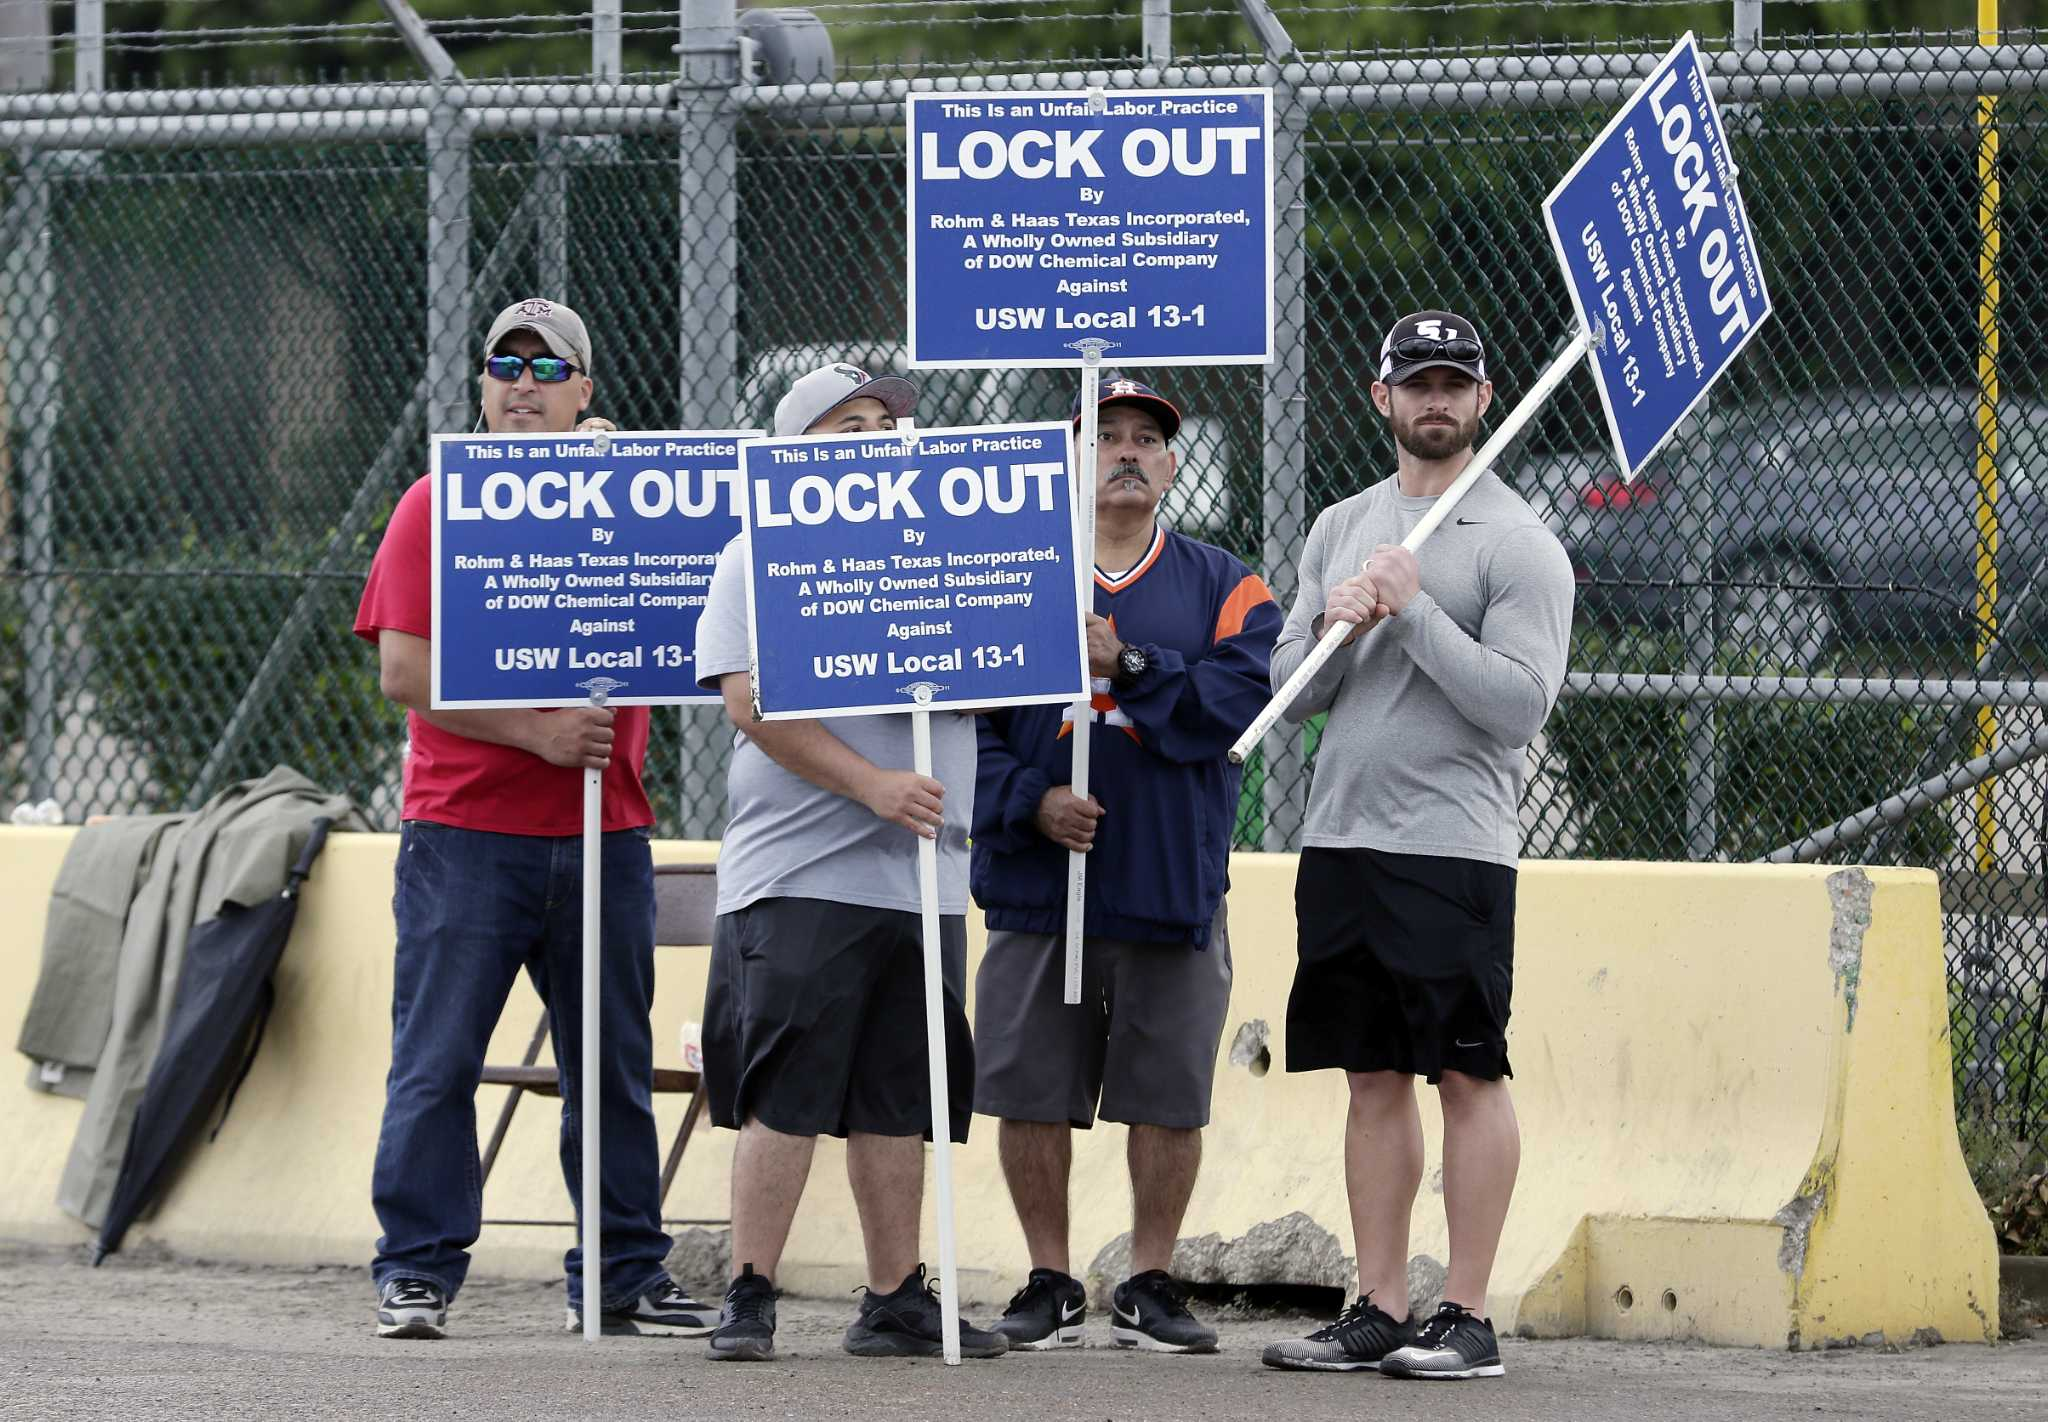 Dow Chemical lockout ending in Deer Park - Houston Chronicle